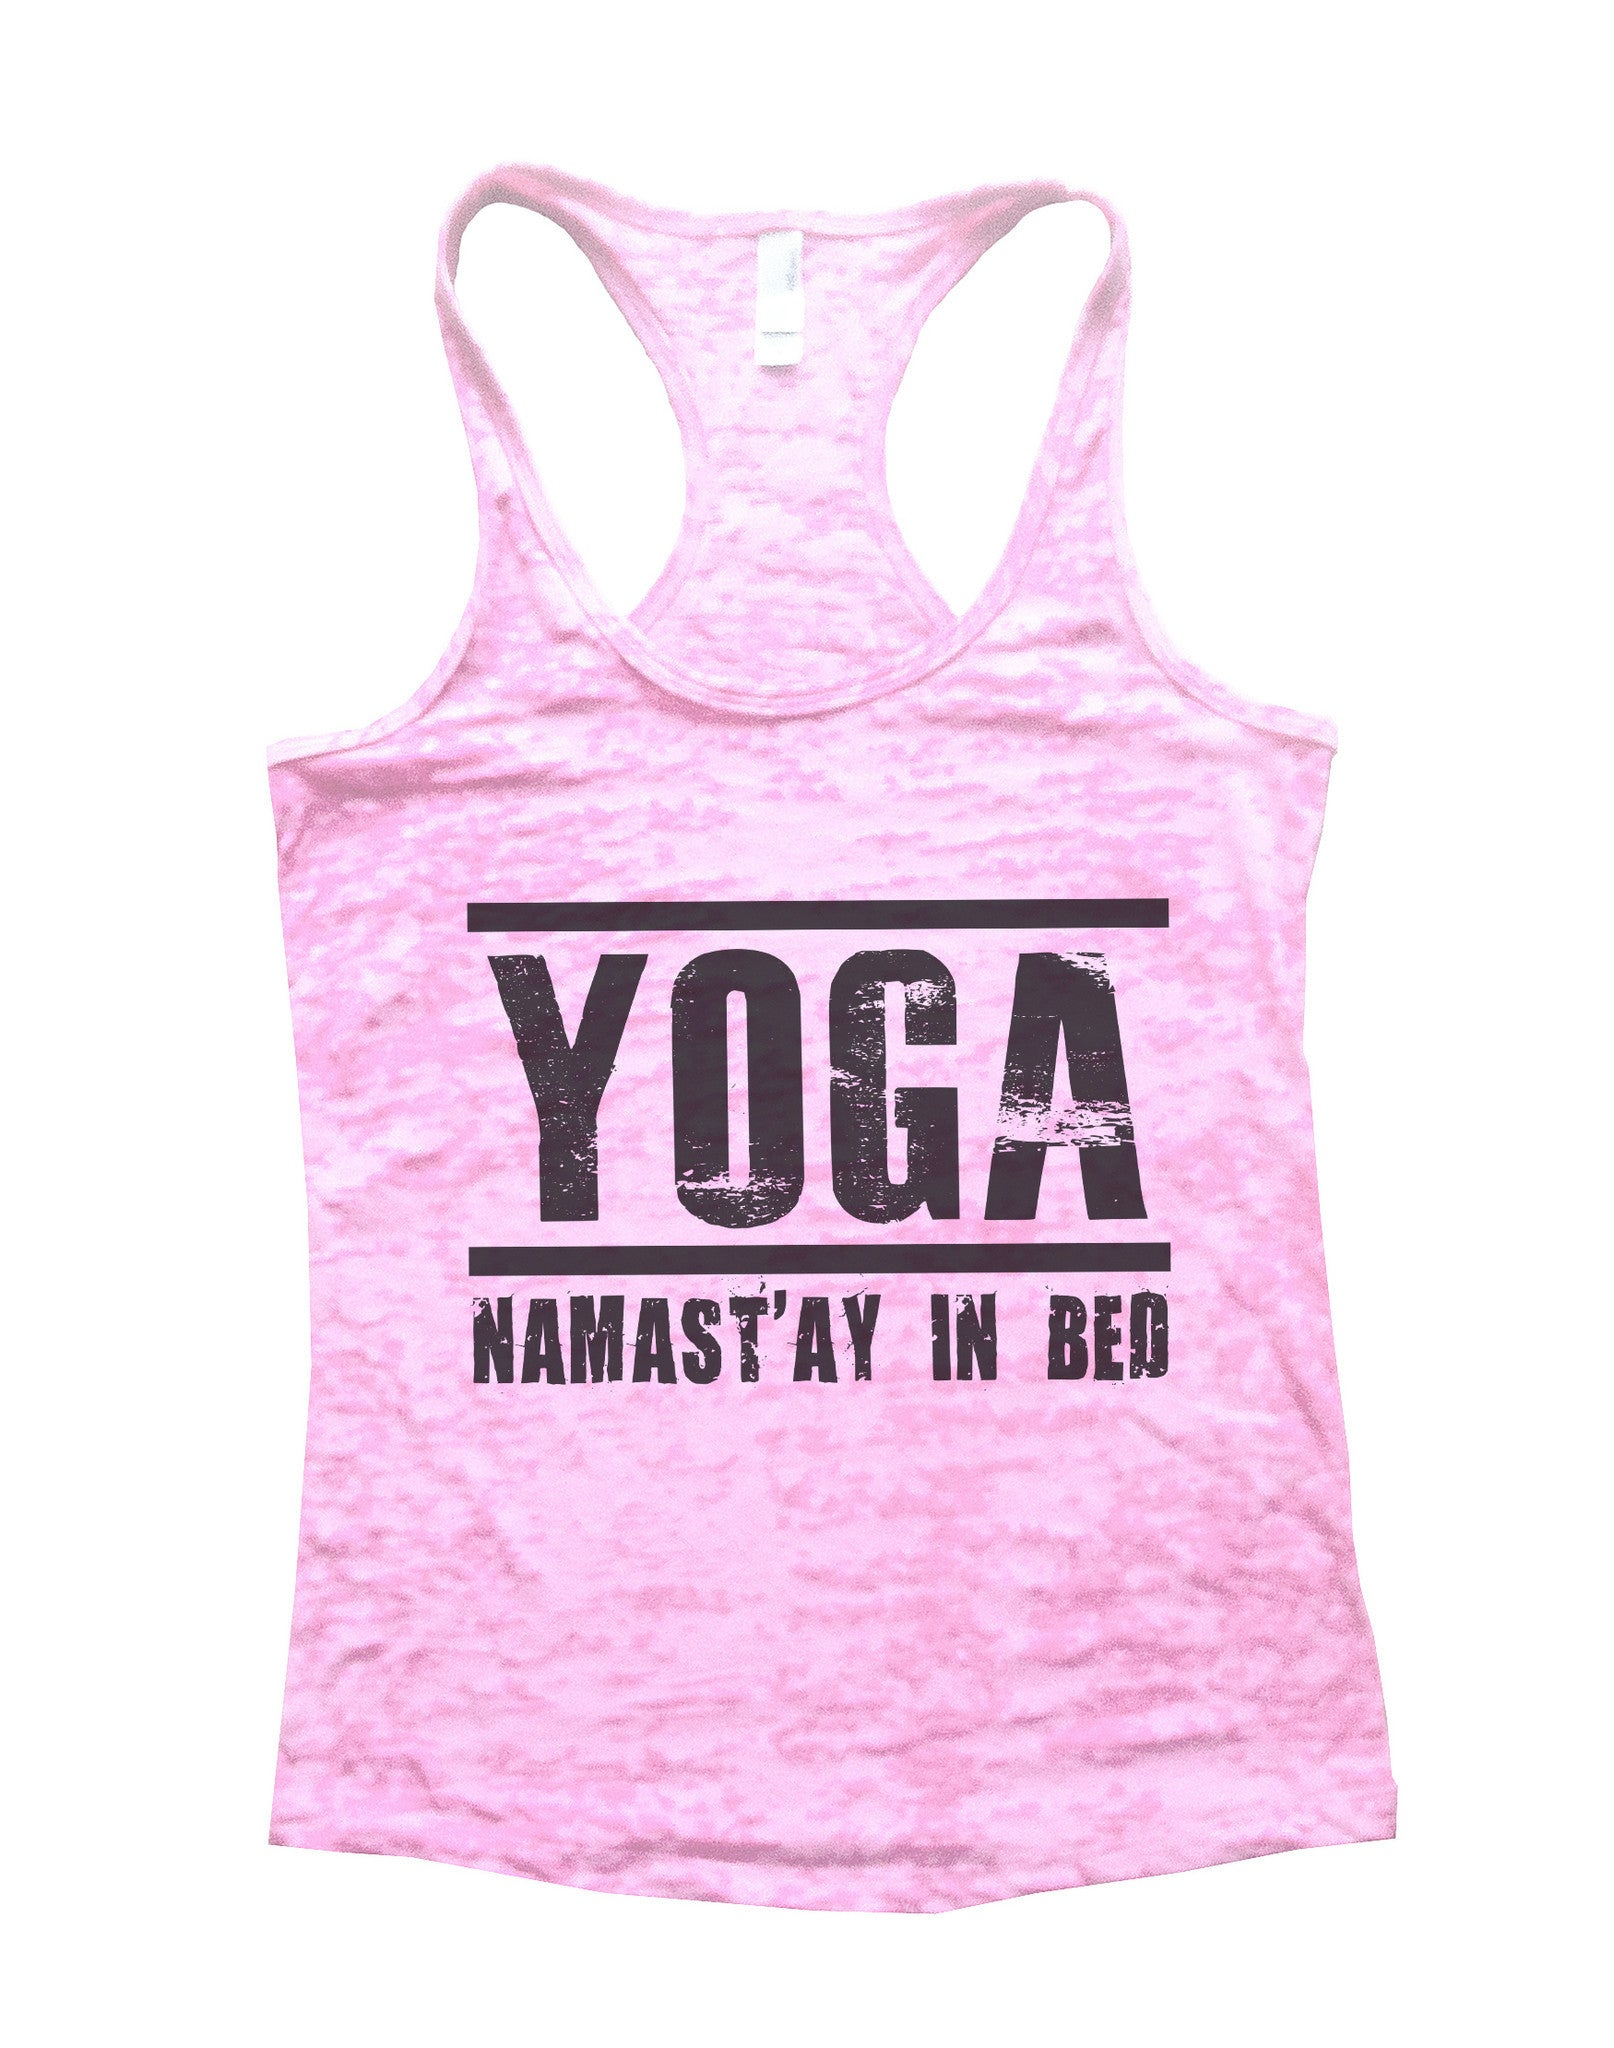 Yoga Namast'ay In Bed Burnout Tank Top By BurnoutTankTops.com - 649 - Funny Shirts Tank Tops Burnouts and Triblends  - 2